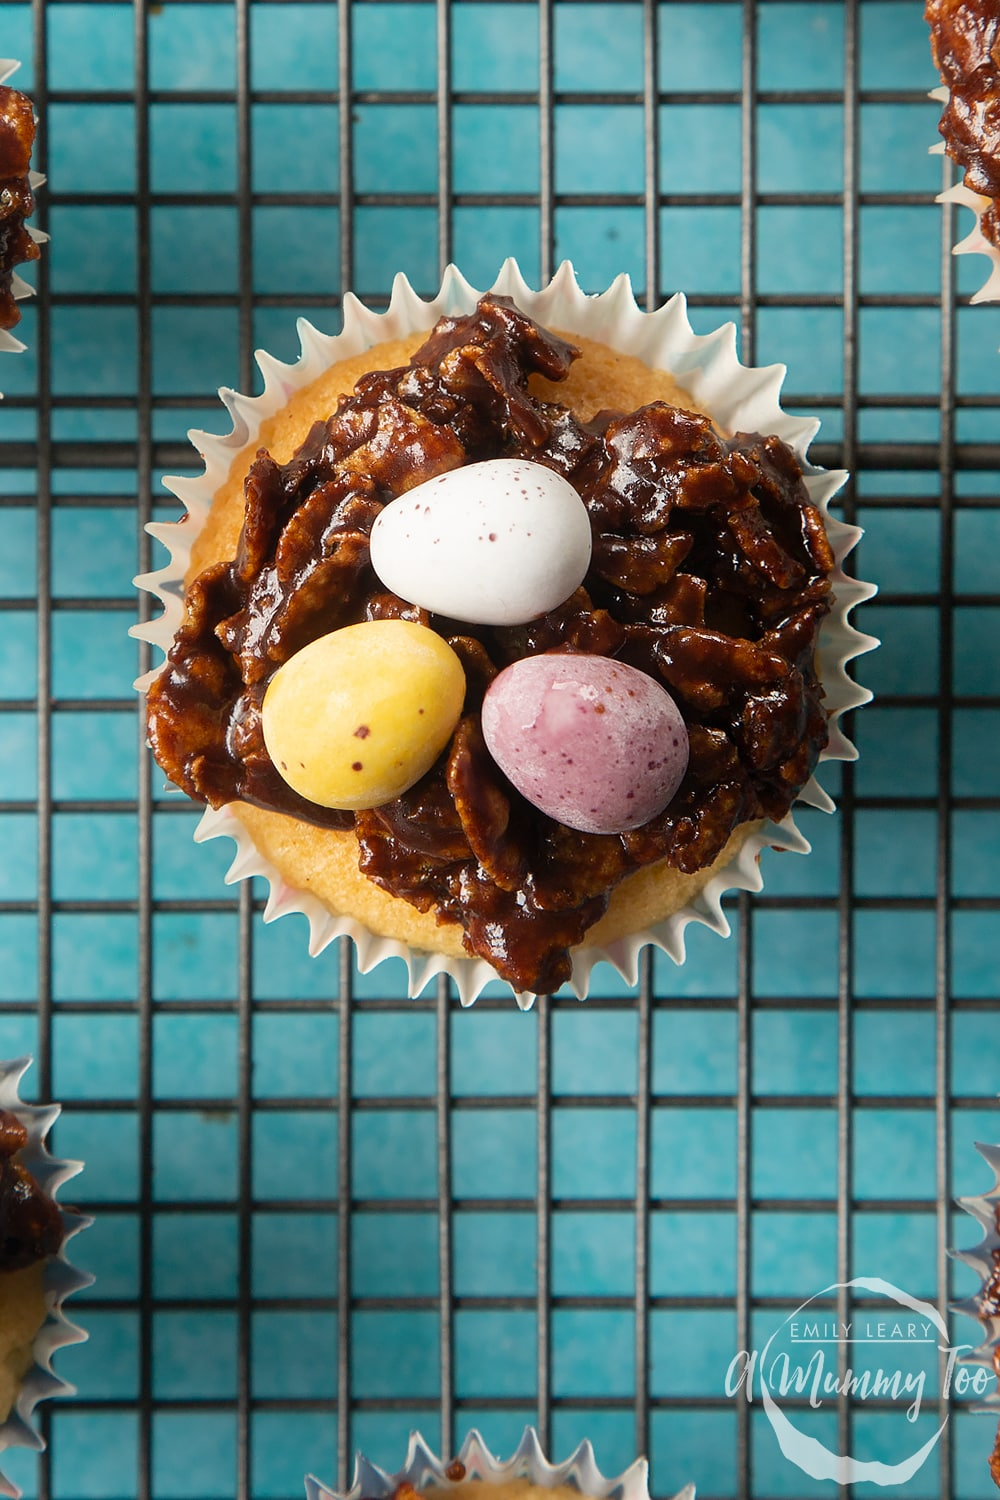 Overhead shot of easter nest cupcakes with chocolate eggs on top on a baking rack with a mummy too logo in the lower-right corner